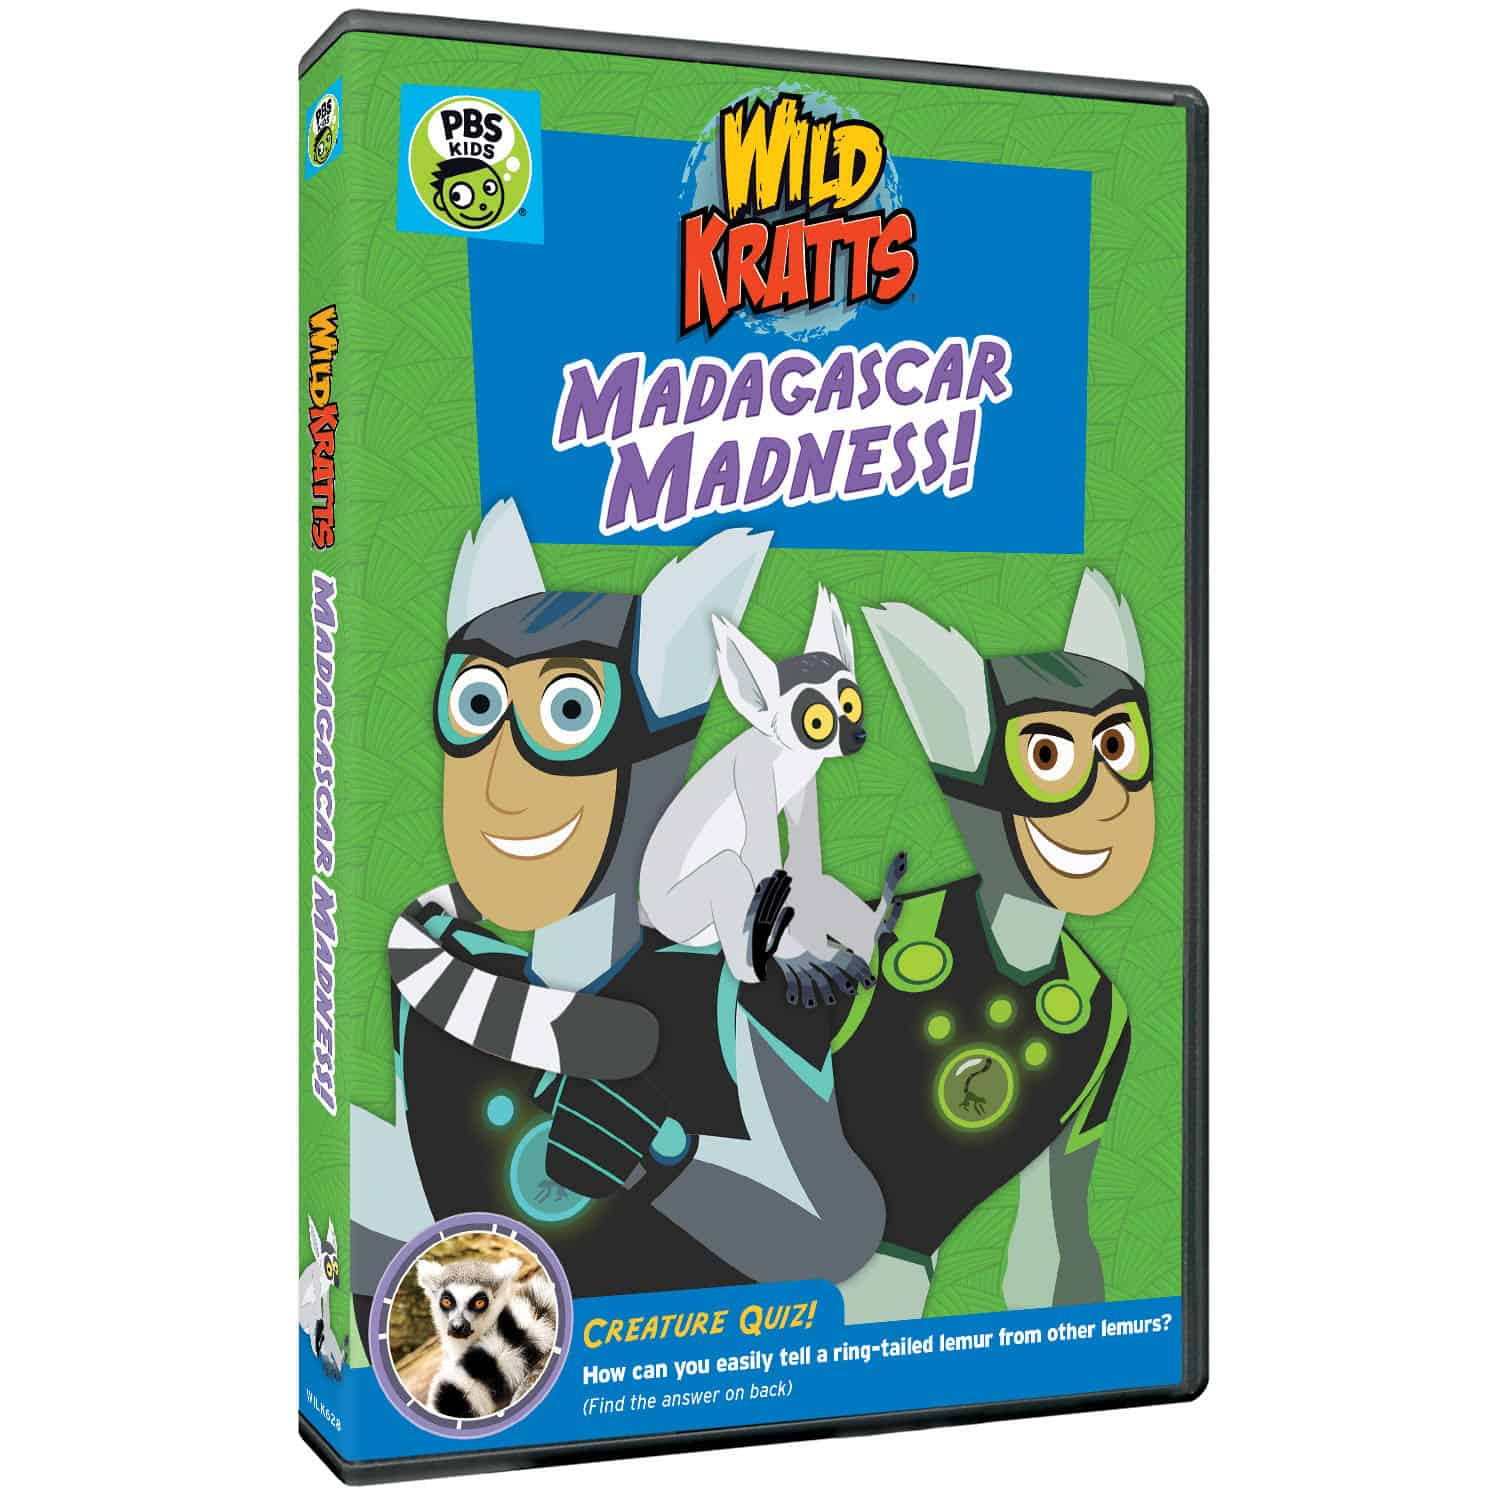 Wild Kratts Madagascar Madness